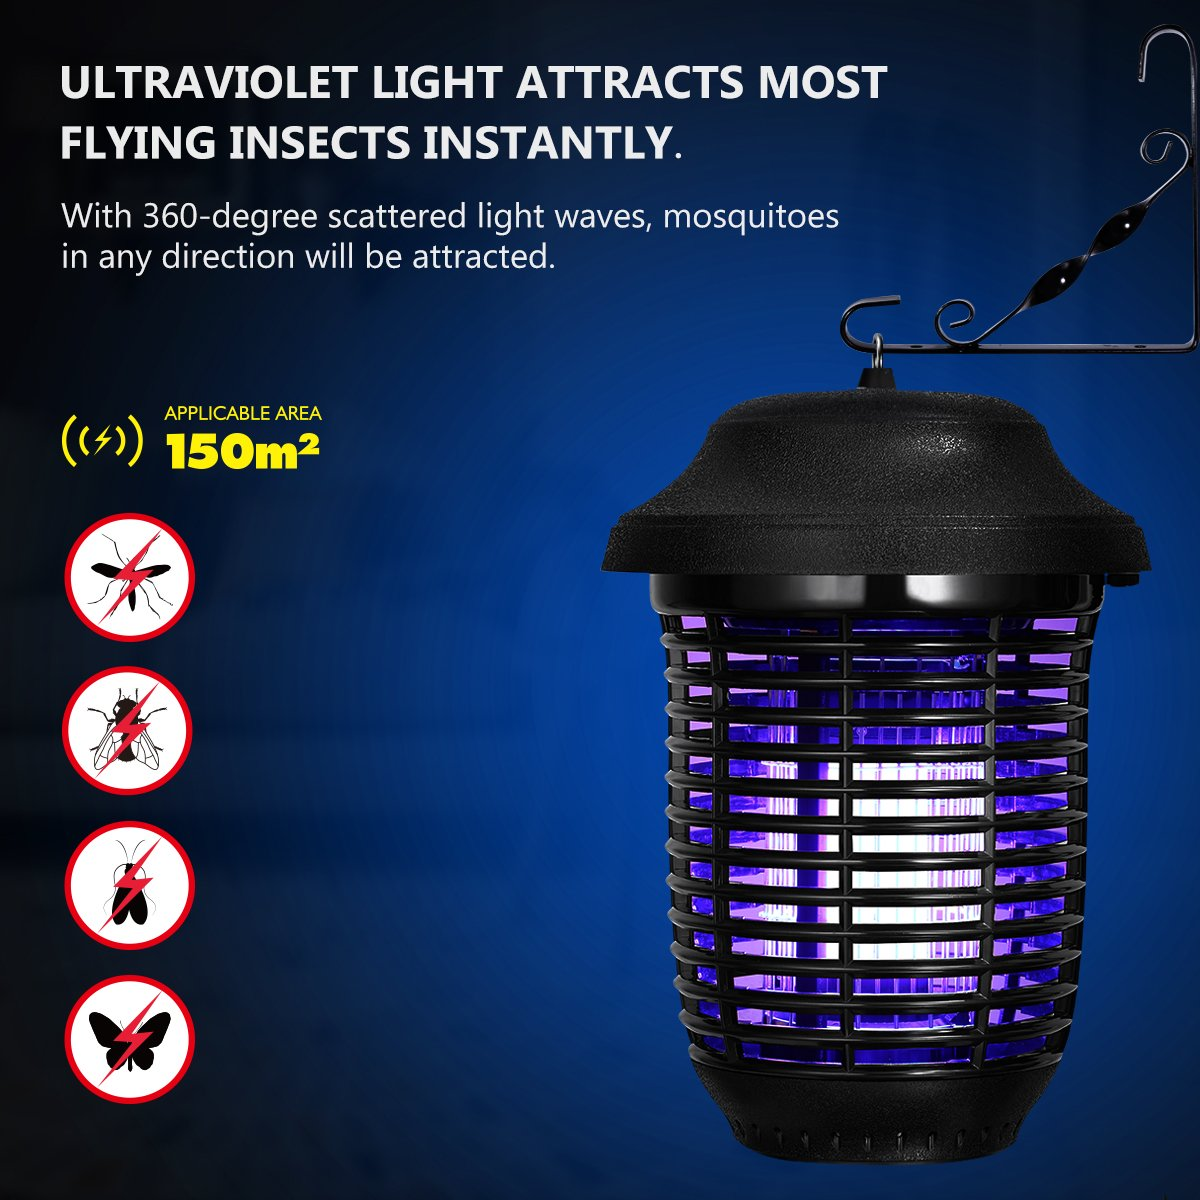 YUNLIGHTS Electric Bug Zapper, 40W Outdoor Mosquito Killer Lantern with Free Hanger, IPX4 Insect Fly Zapper Light for Patio, Gardens, Yards, Pool Area by YUNLIGHTS (Image #4)